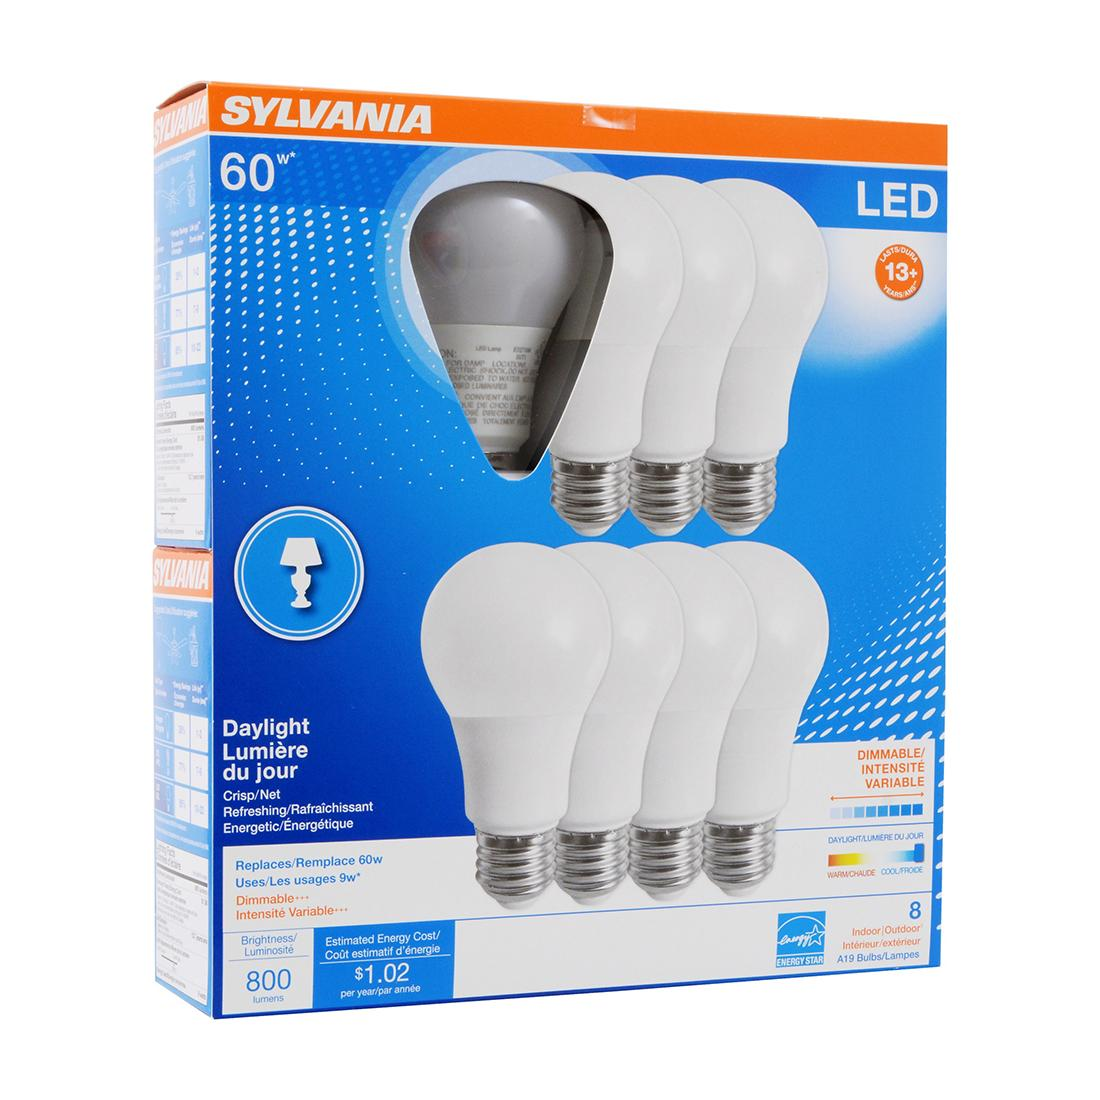 8Pk - Sylvania - 9W A19 LED 800LM 5000K Daylight Dimmable Bulb - 60w equiv